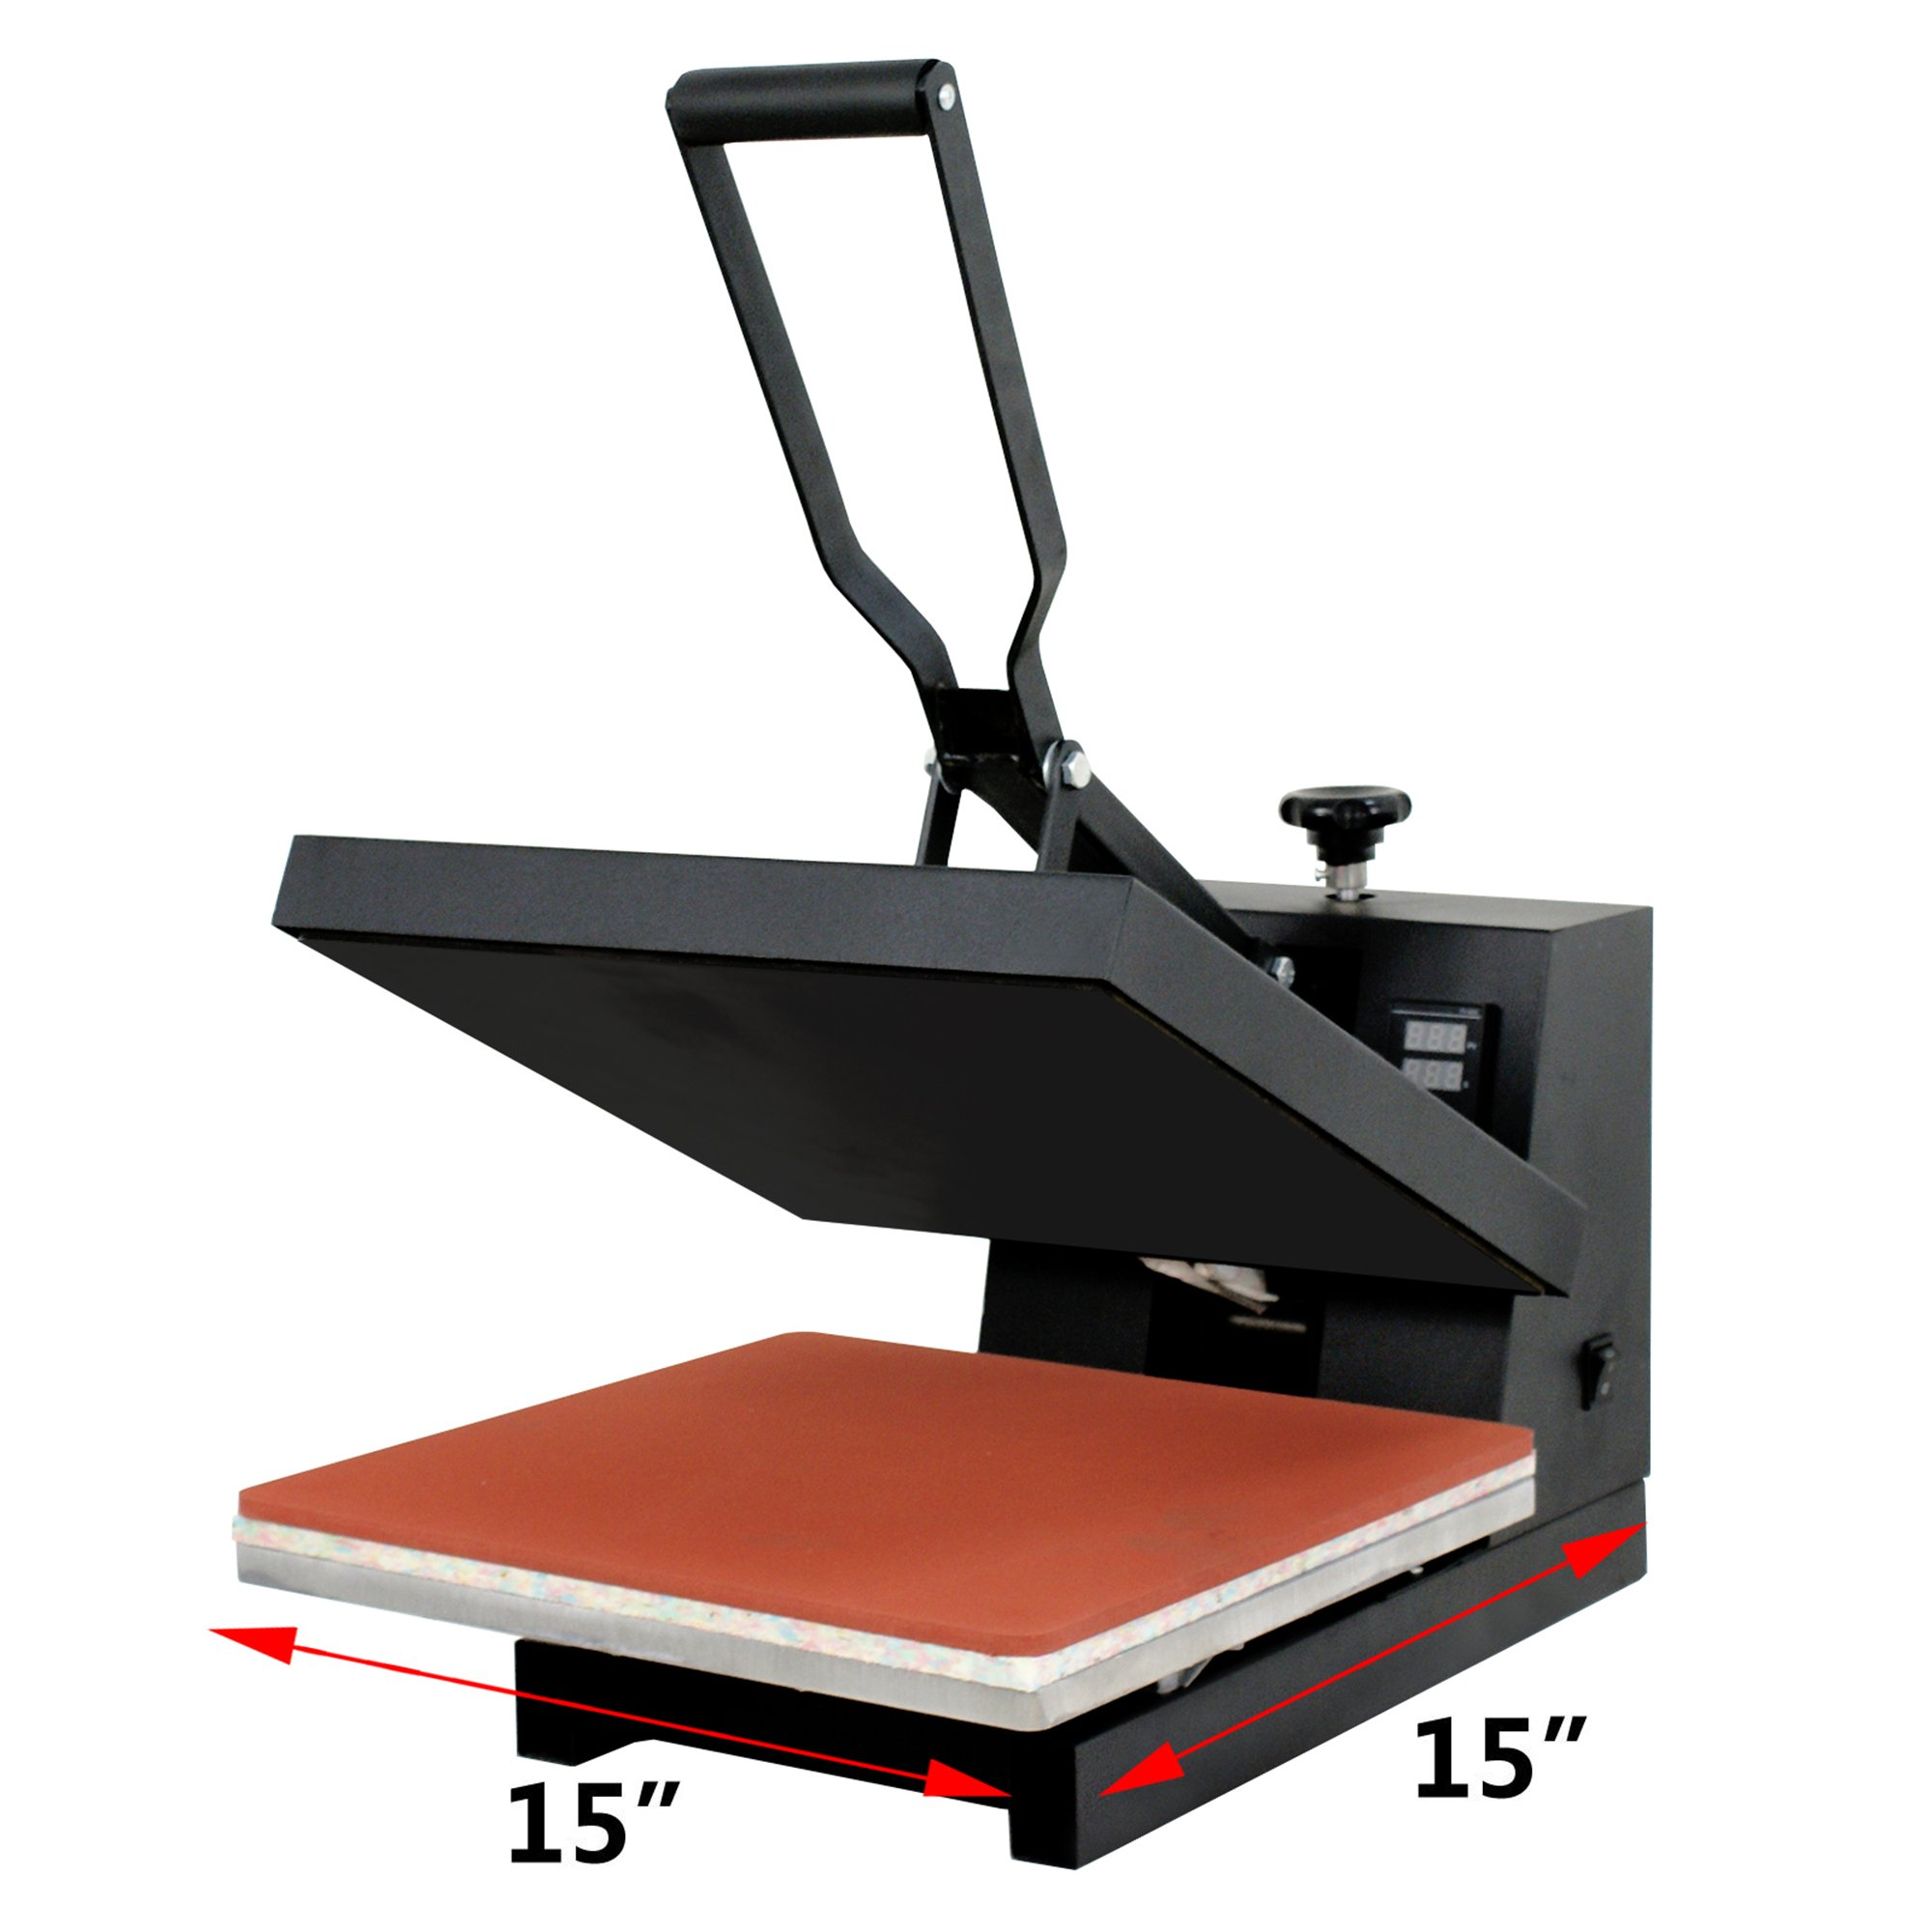 F2C 15'' X 15'' Digital Transfer Sublimation Heat Press Machine for T-shirt (1515) by F2C